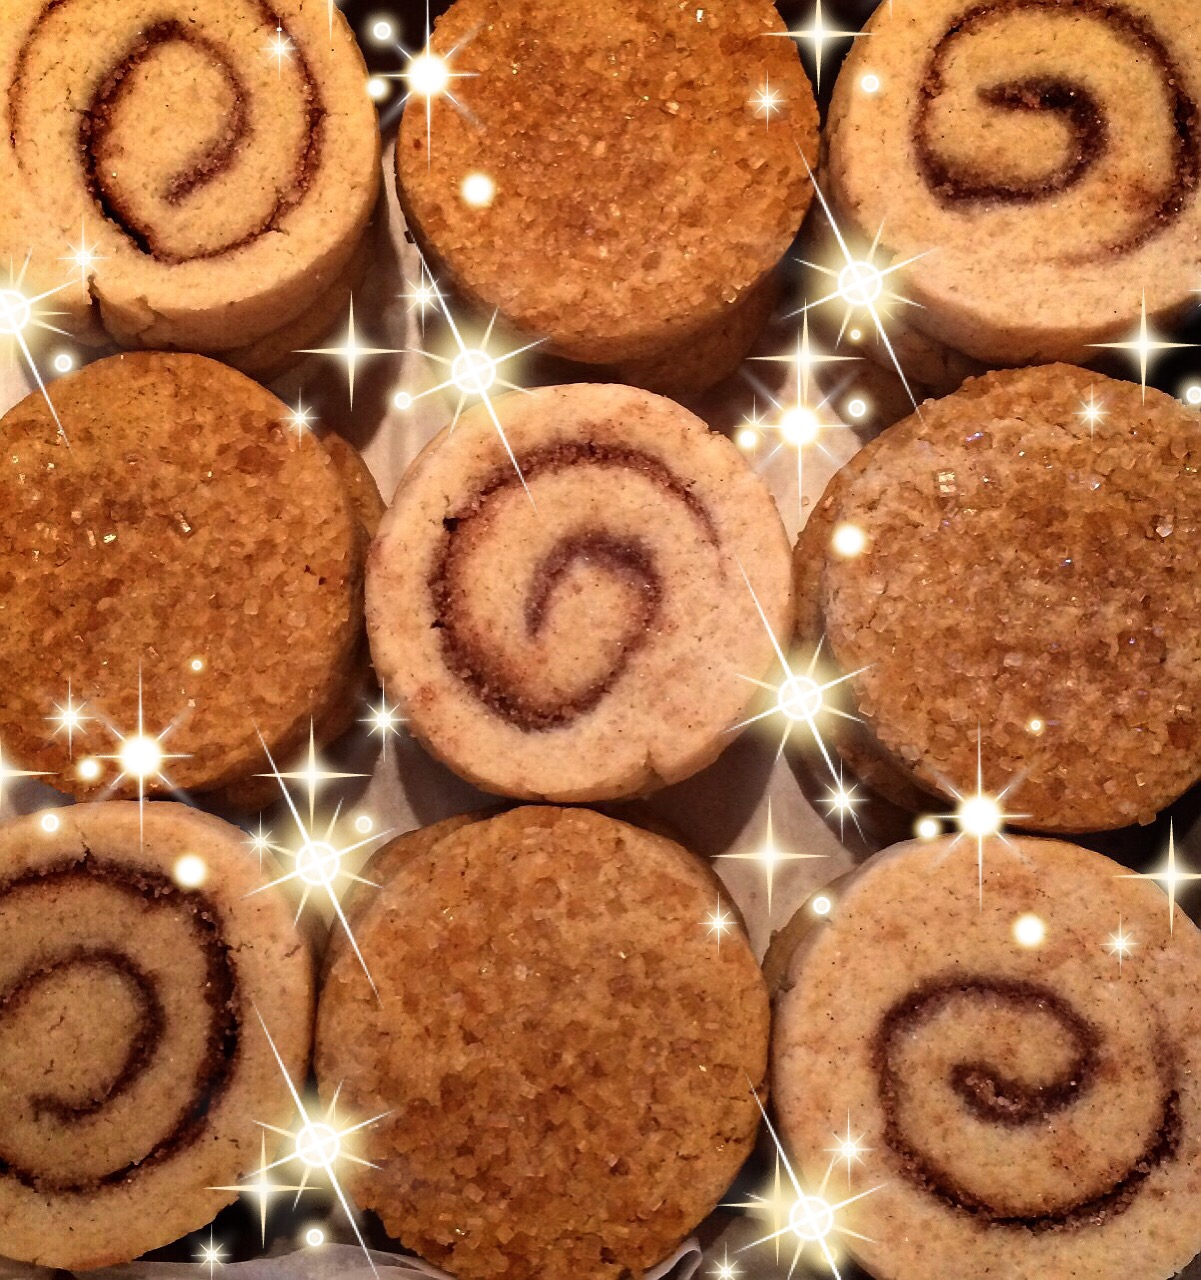 *HOLIDAY EDITION*  SPICE IS NICE packs available now in our shop! PUMPKIN SPICE / CINNAMON SWIRL combination packs offered for a limited time! available until 12/31/14 VEGAN / GLUTENFREE